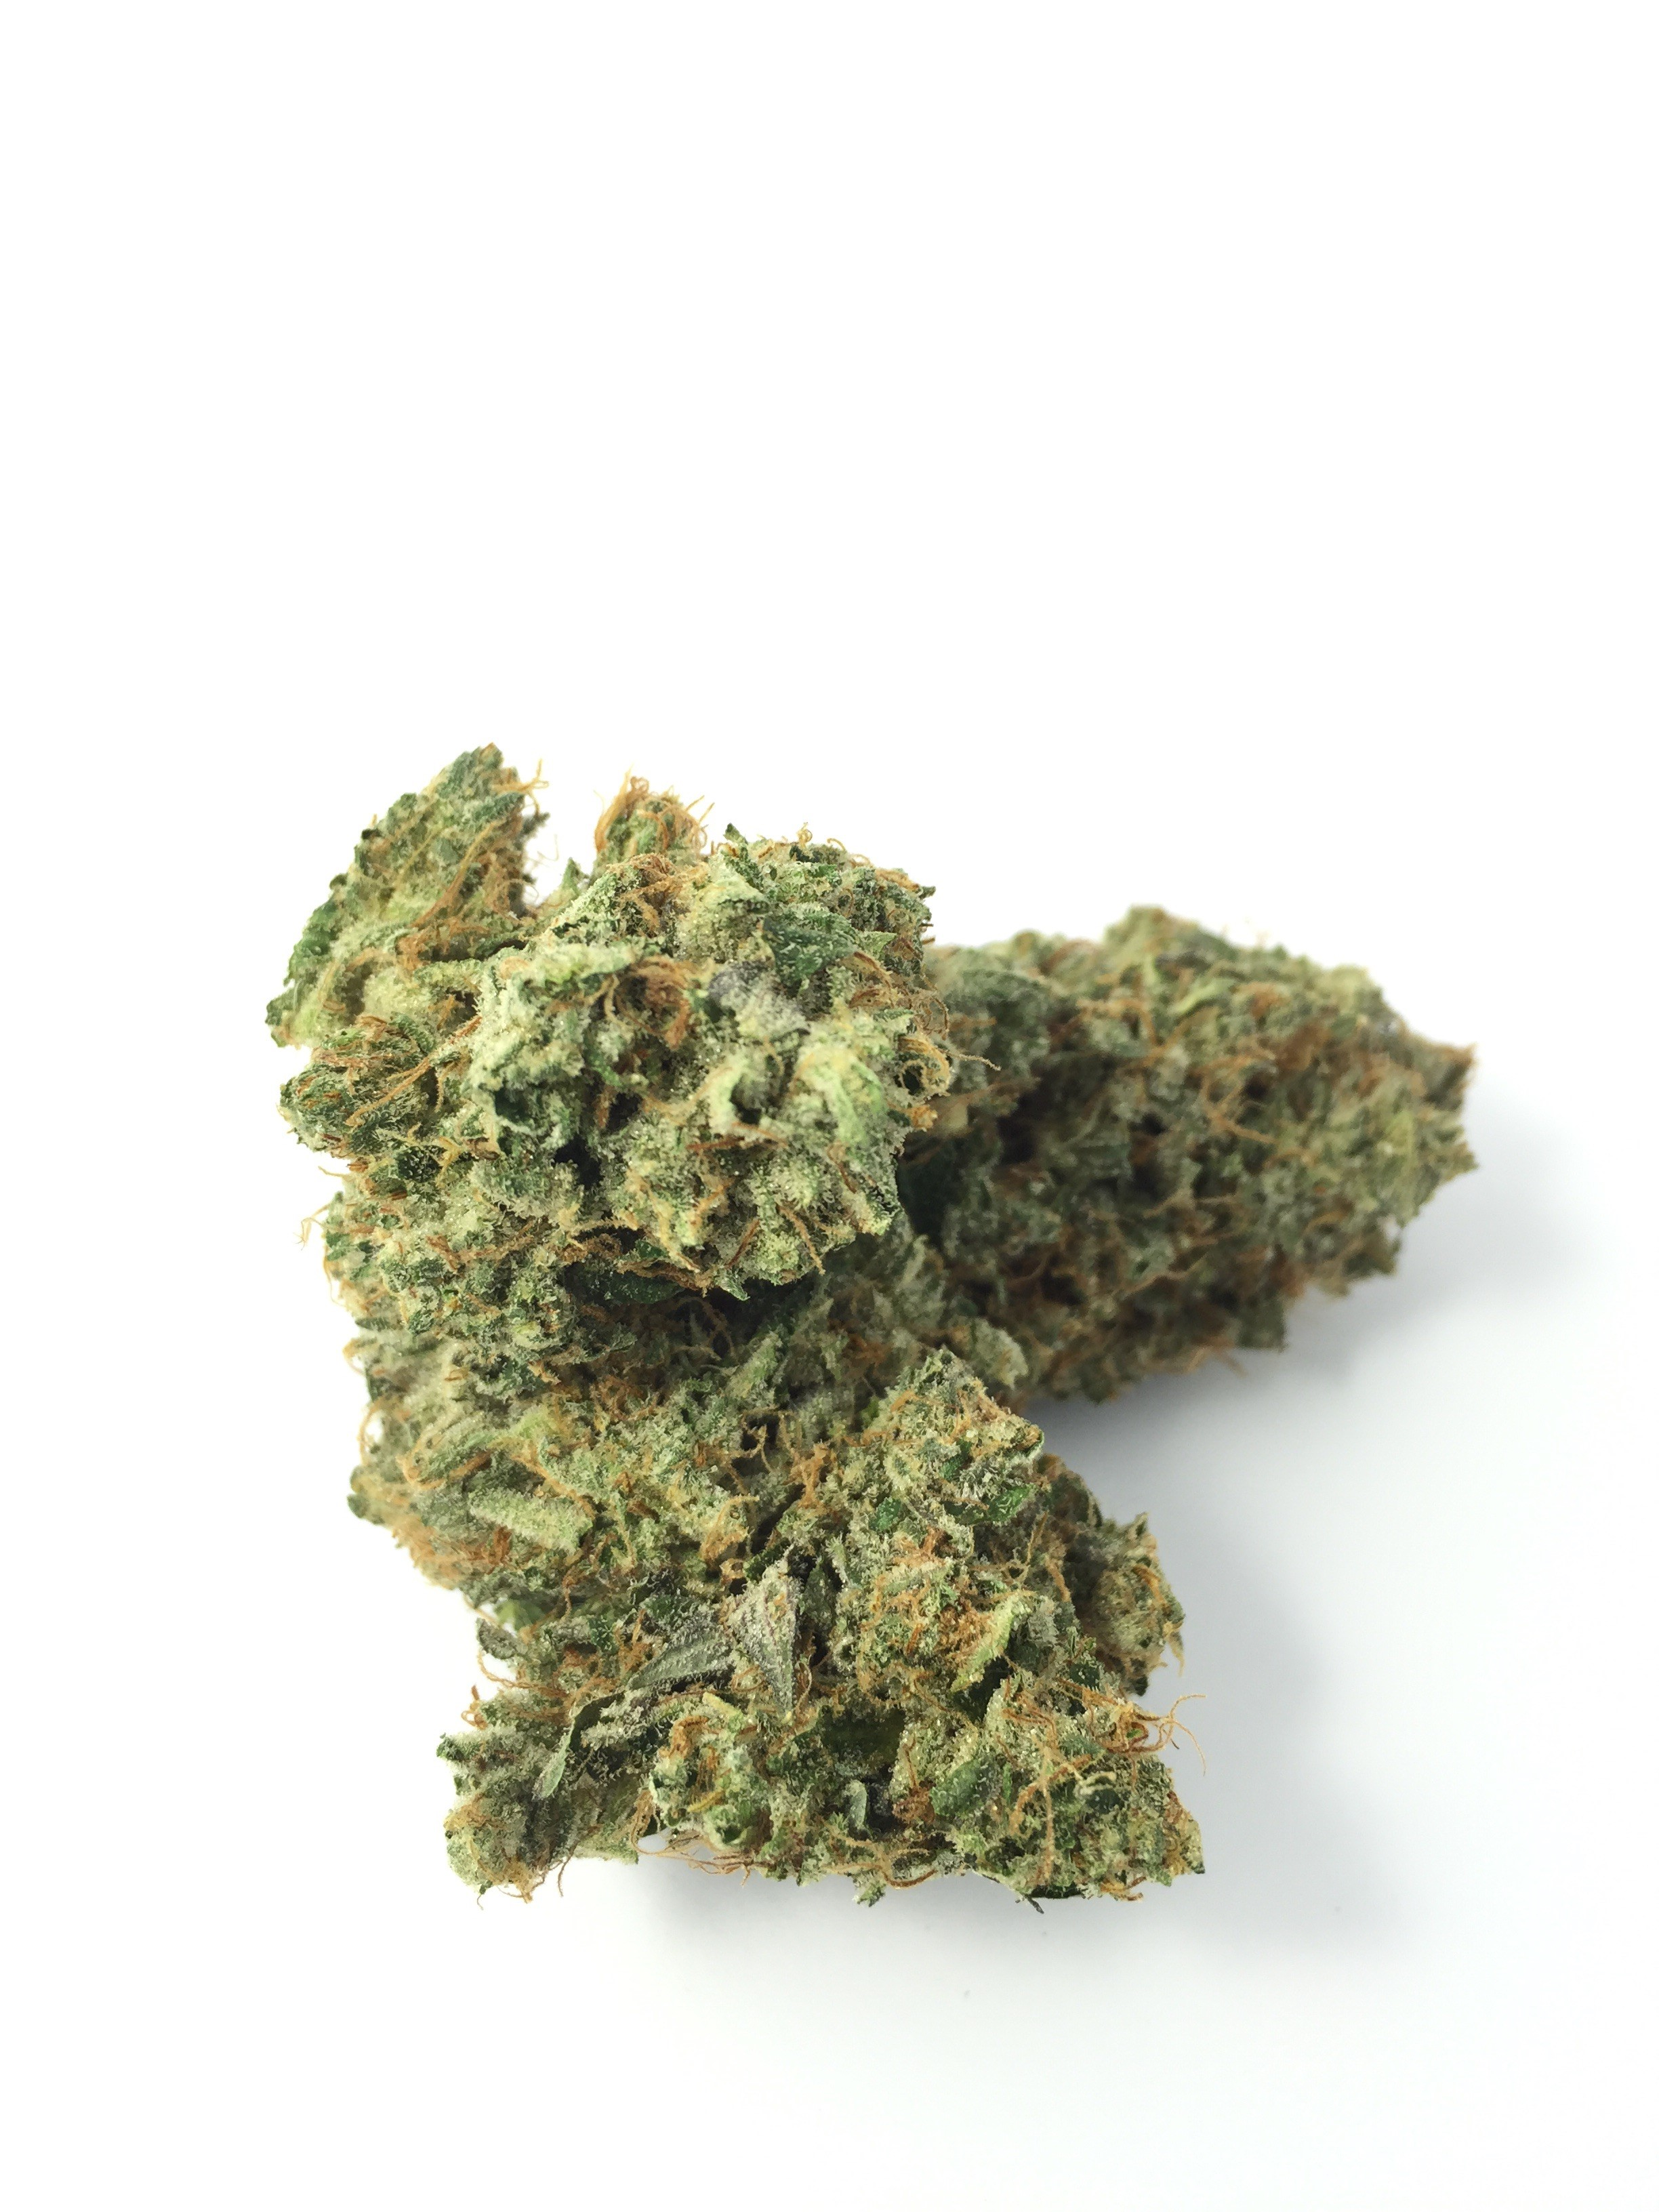 simplybudz weed products online buy weed online canada